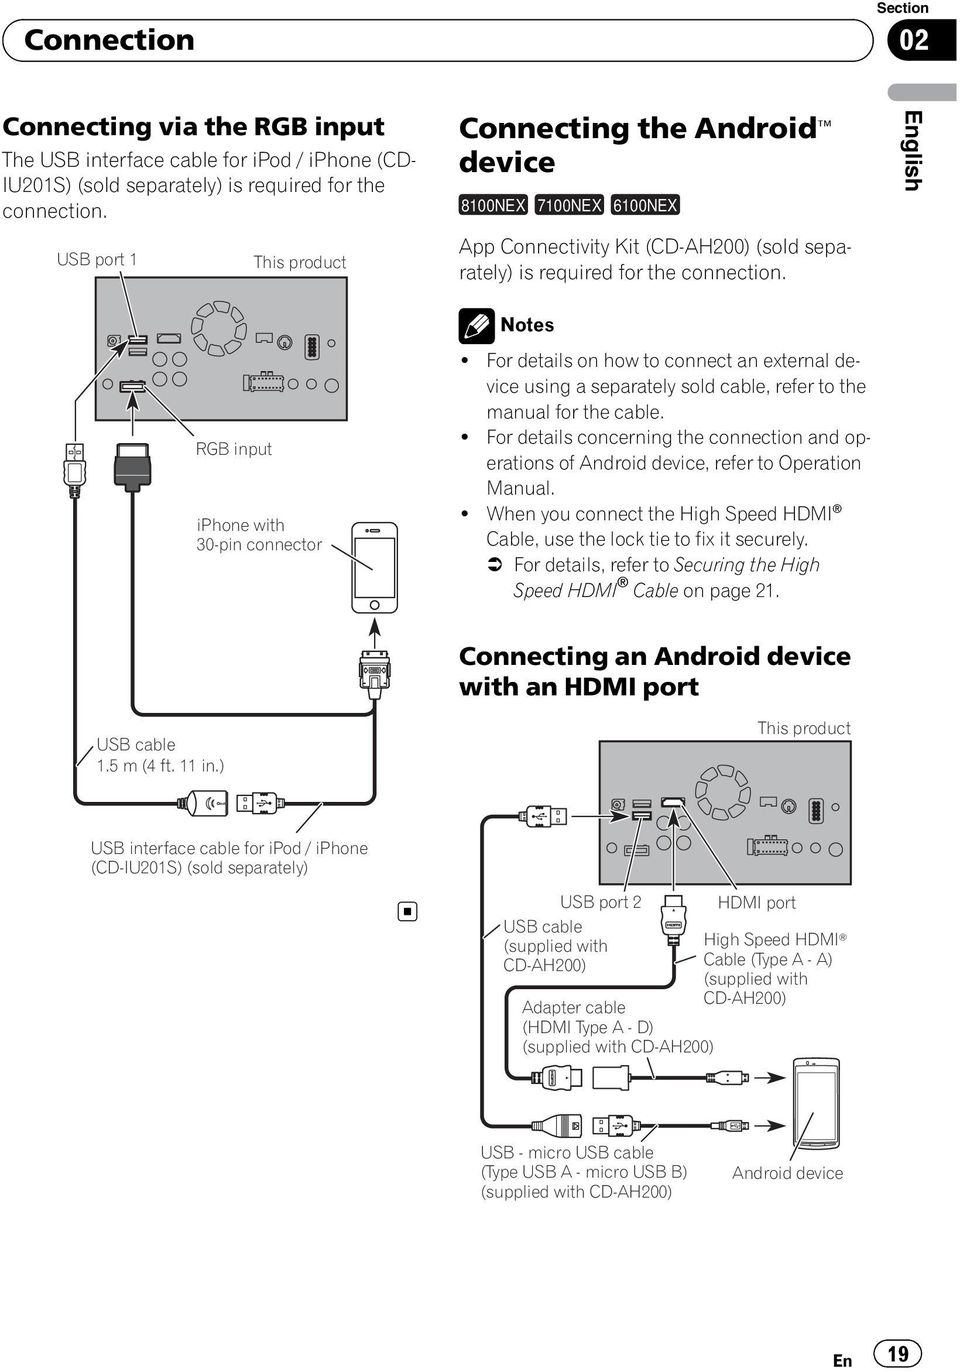 Notes! For details on how to connect an external device using a separately sold cable, refer to the manual for the cable.